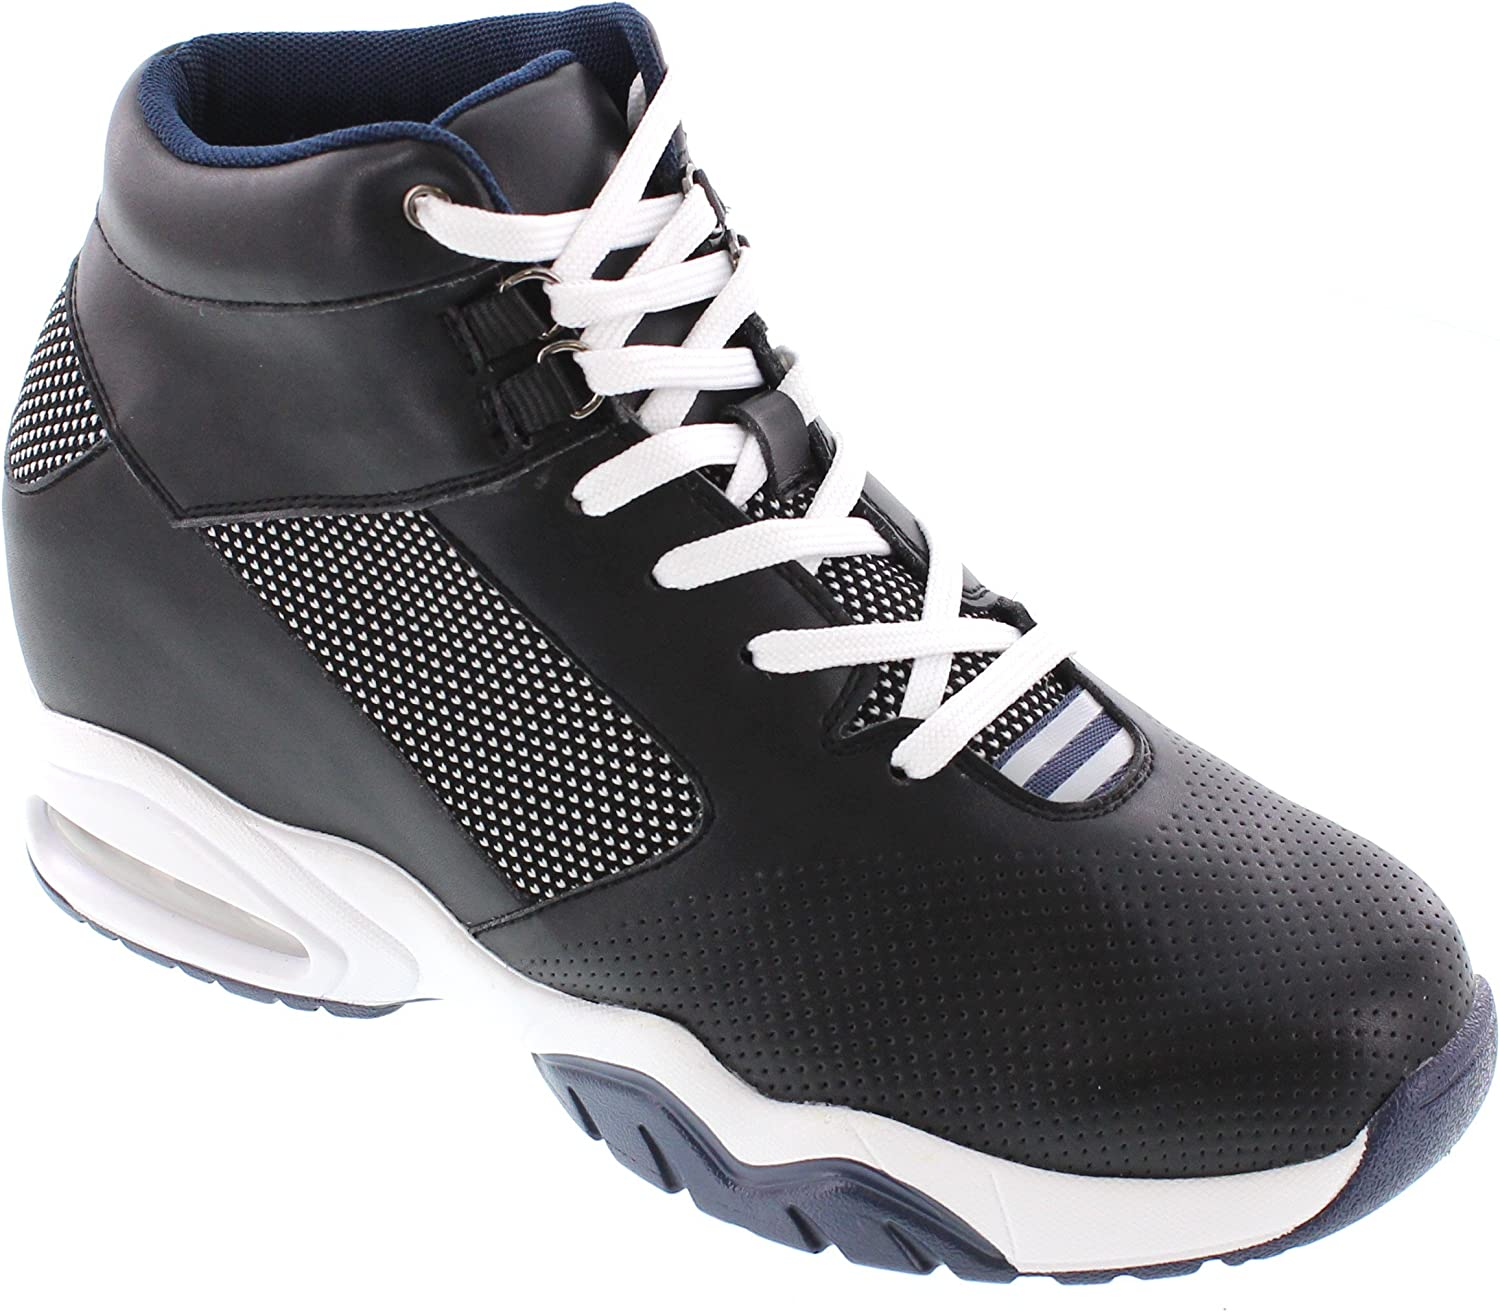 TOTO - H29011 - 3.6 Inches Taller - Height Increasing Elevator shoes - Black bluee Fashion Sneakers